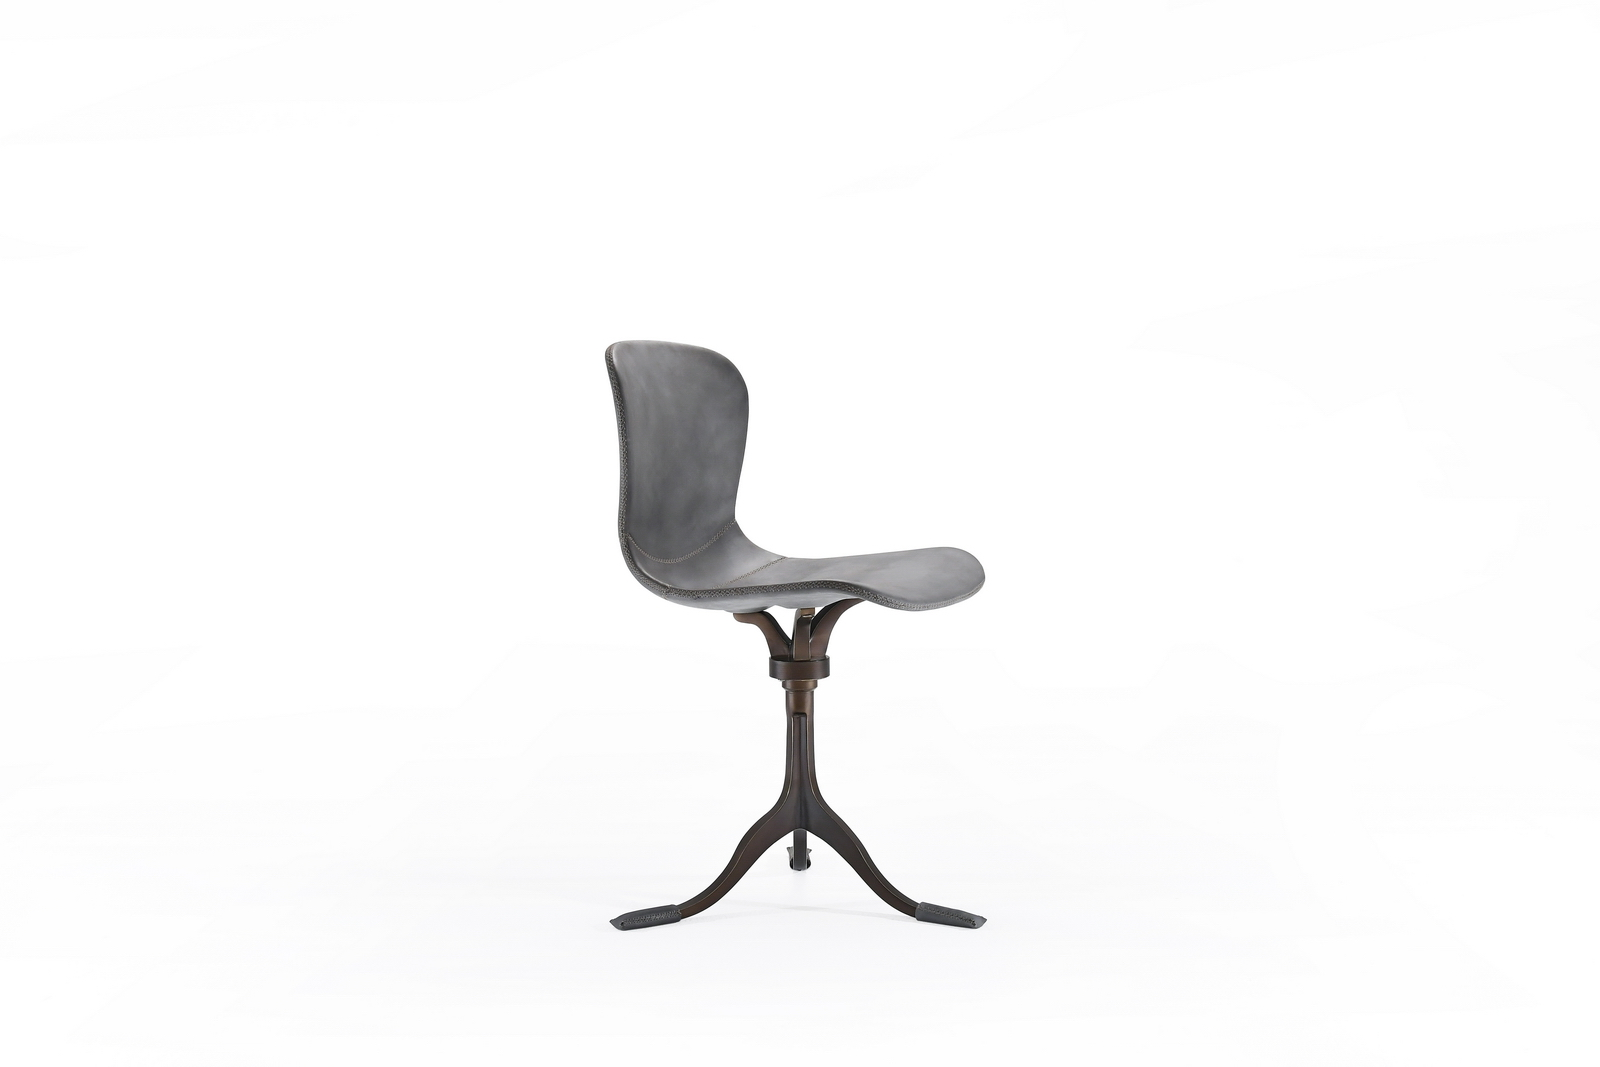 PTendercool-Chair-PT43-BS3-GY-210615-05